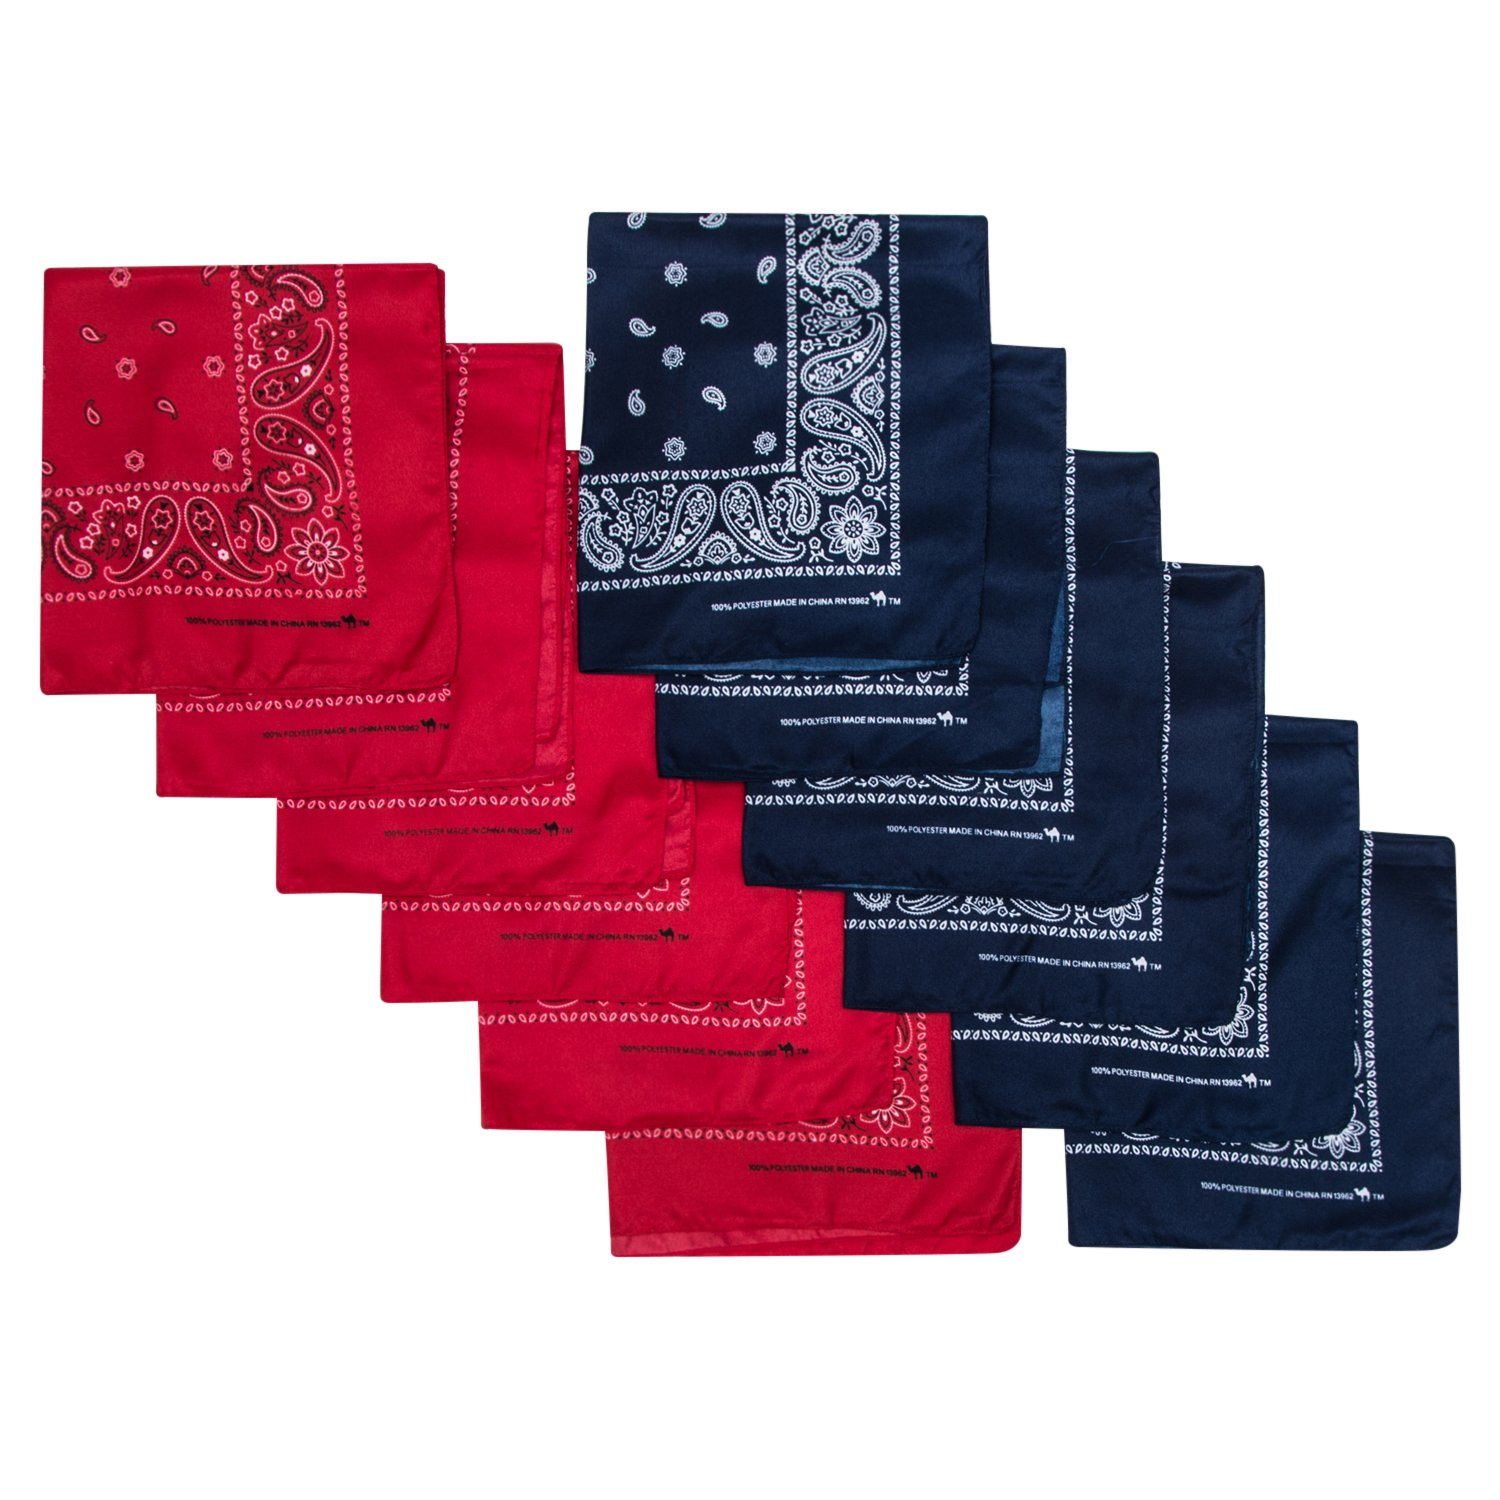 Camel Brand Bandana 12 Pack 21x21 100% Polyester (Red and Navy)